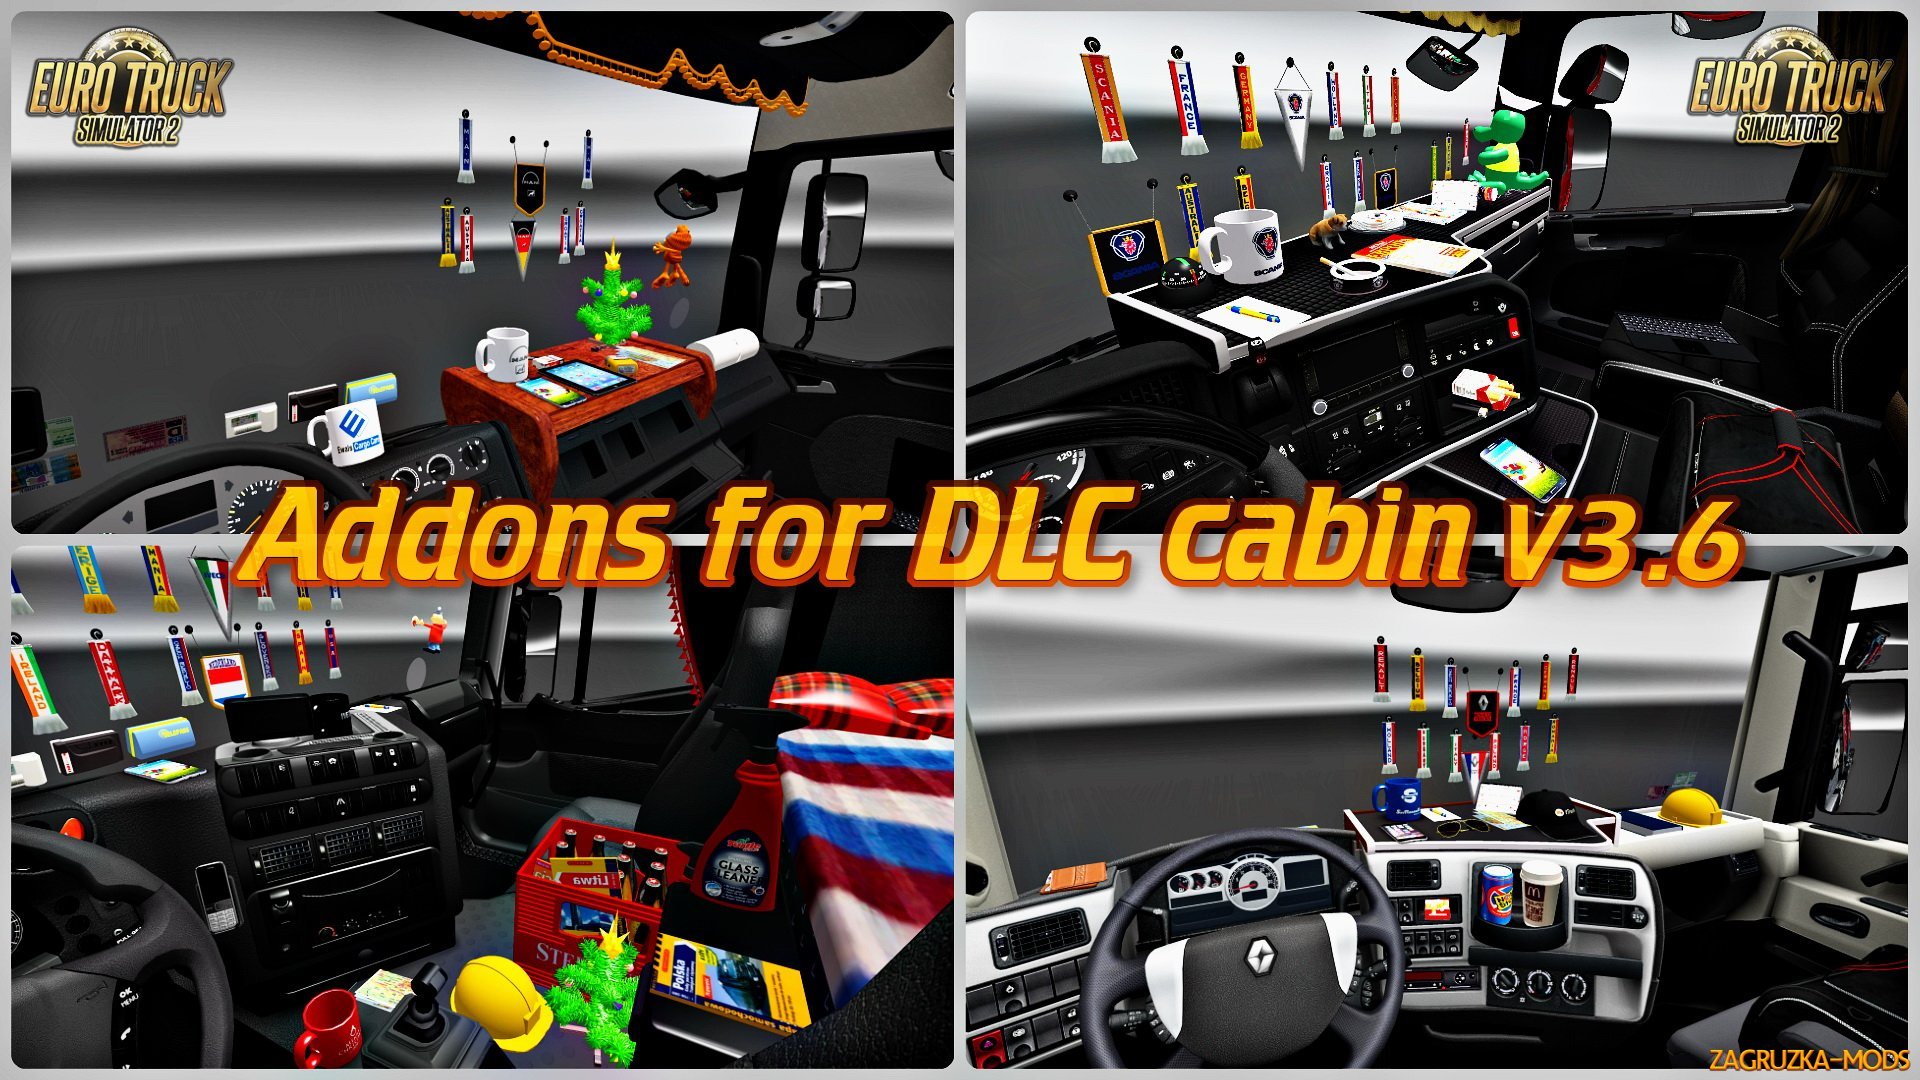 Addons for DLC cabin v3.6 for ETS 2